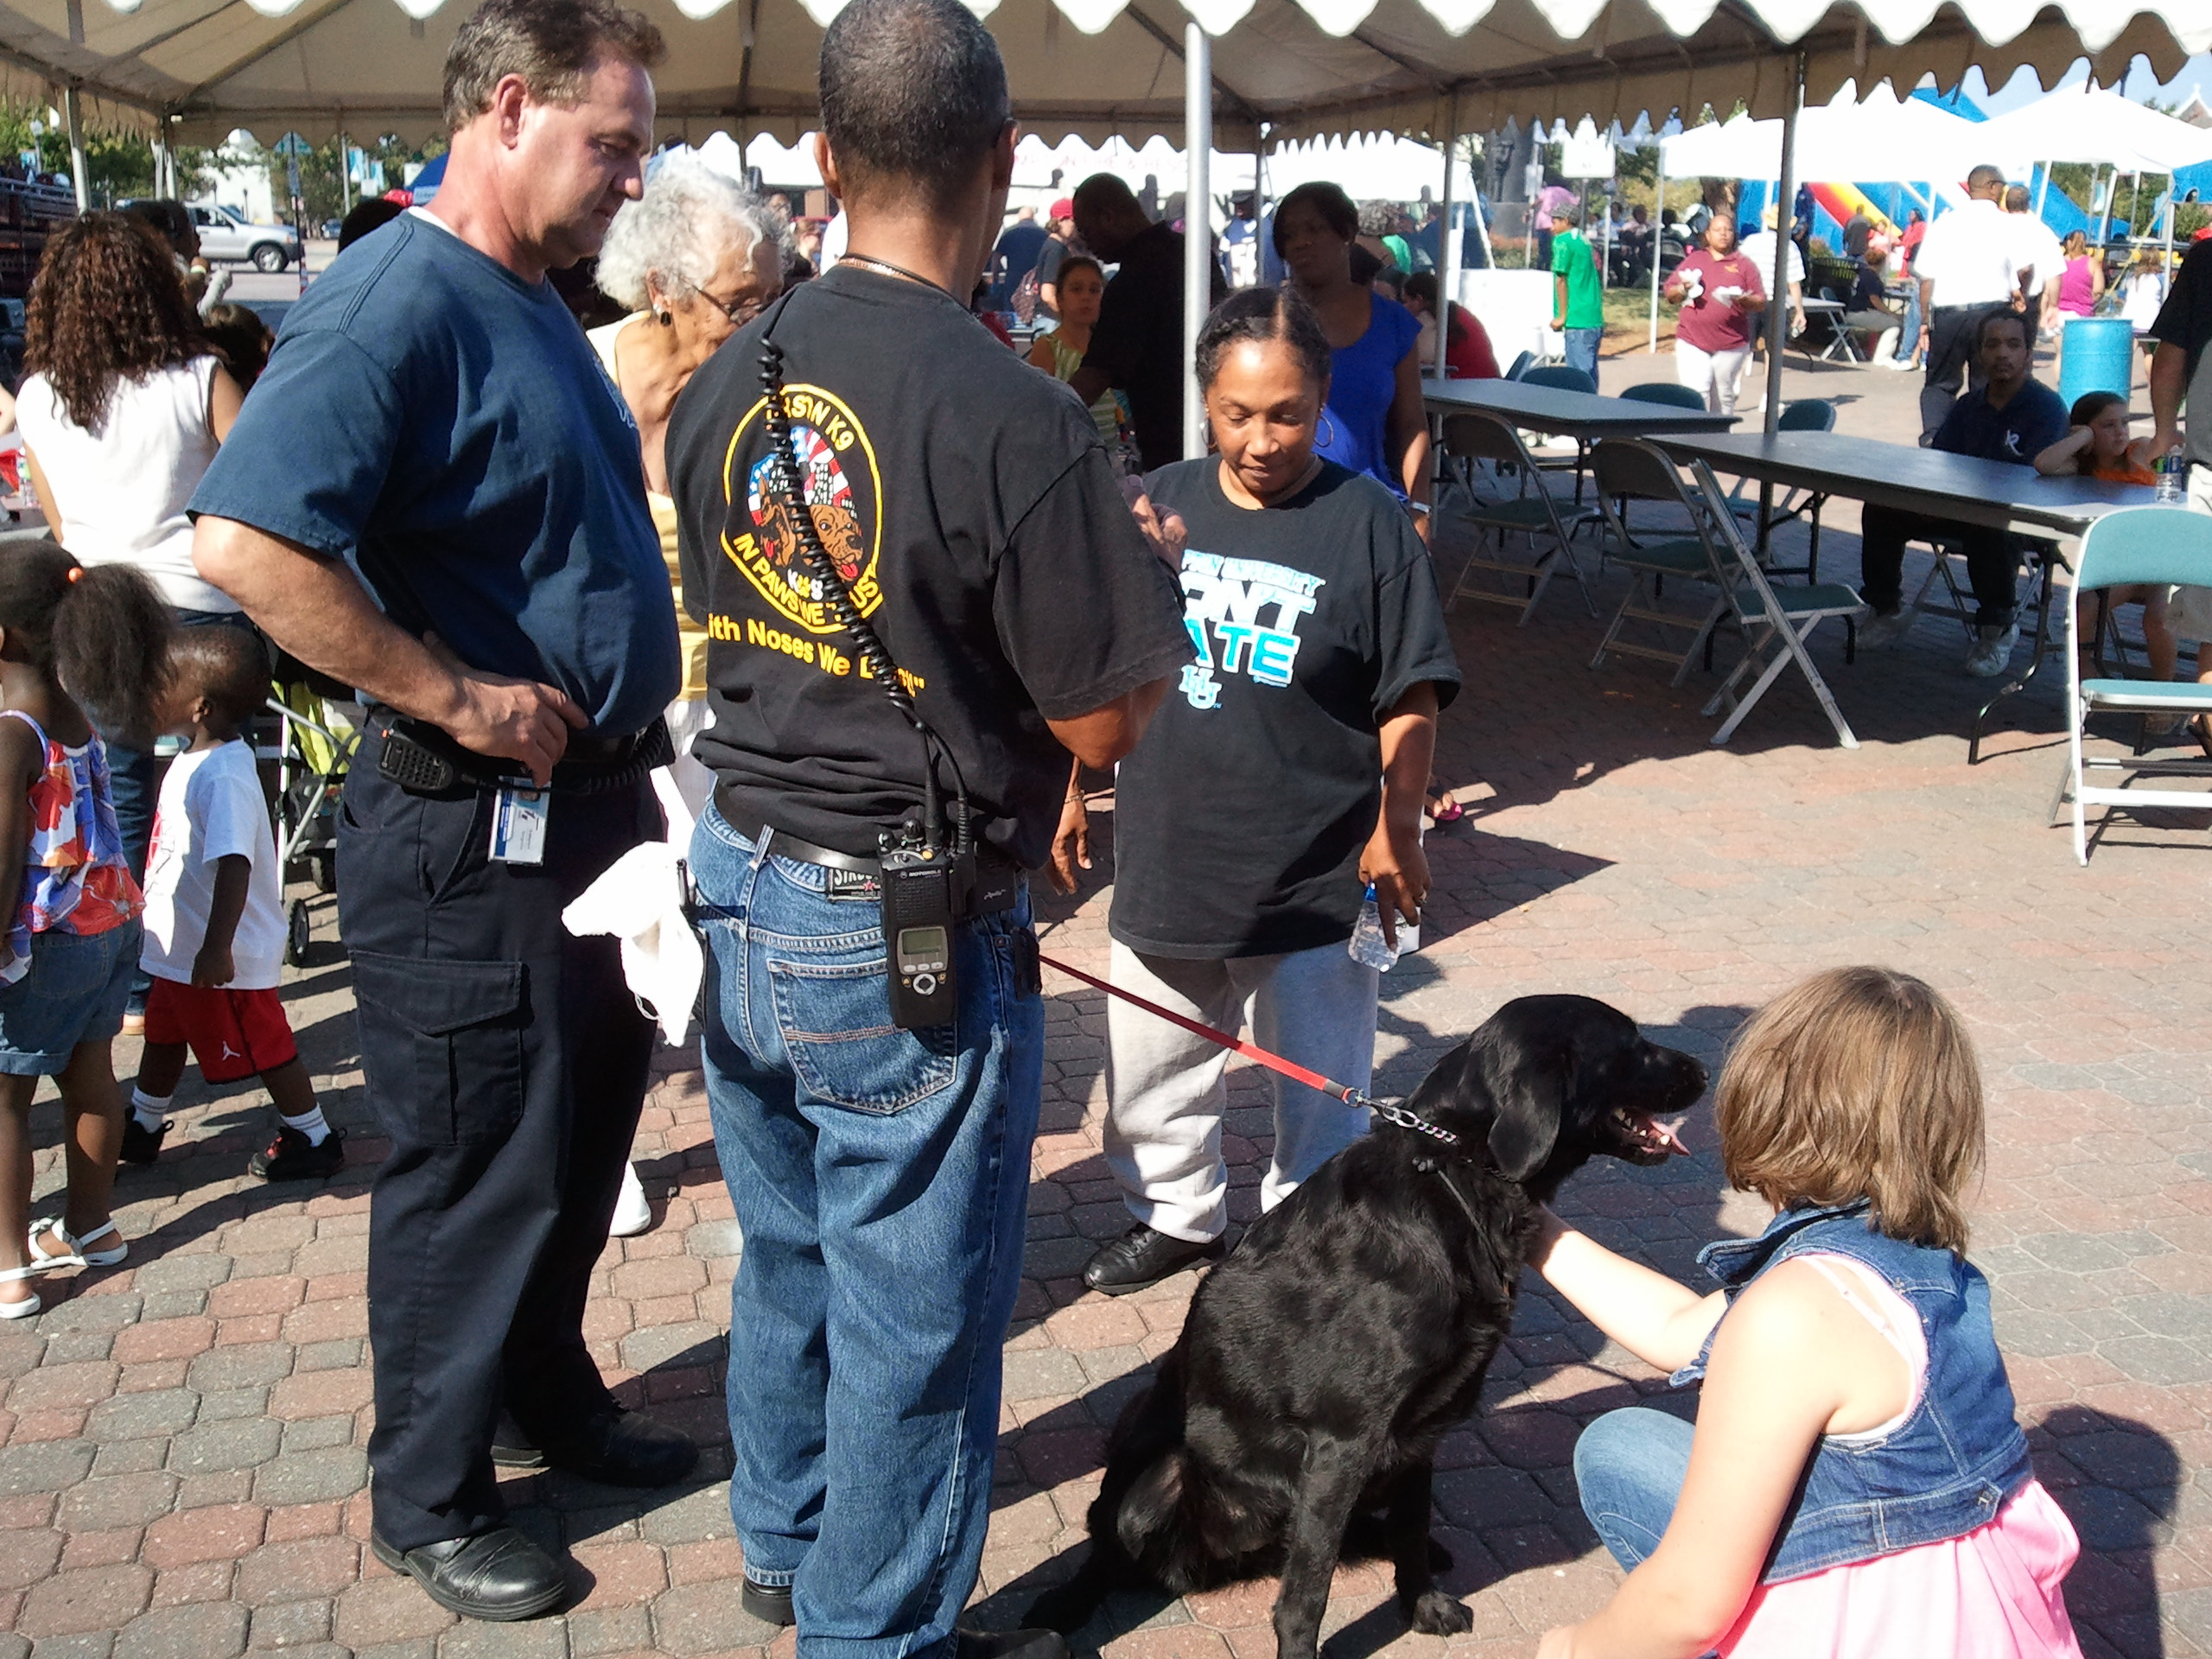 Firefighter S.Brown and Investigator Gomes with Accelarant dog Taylor